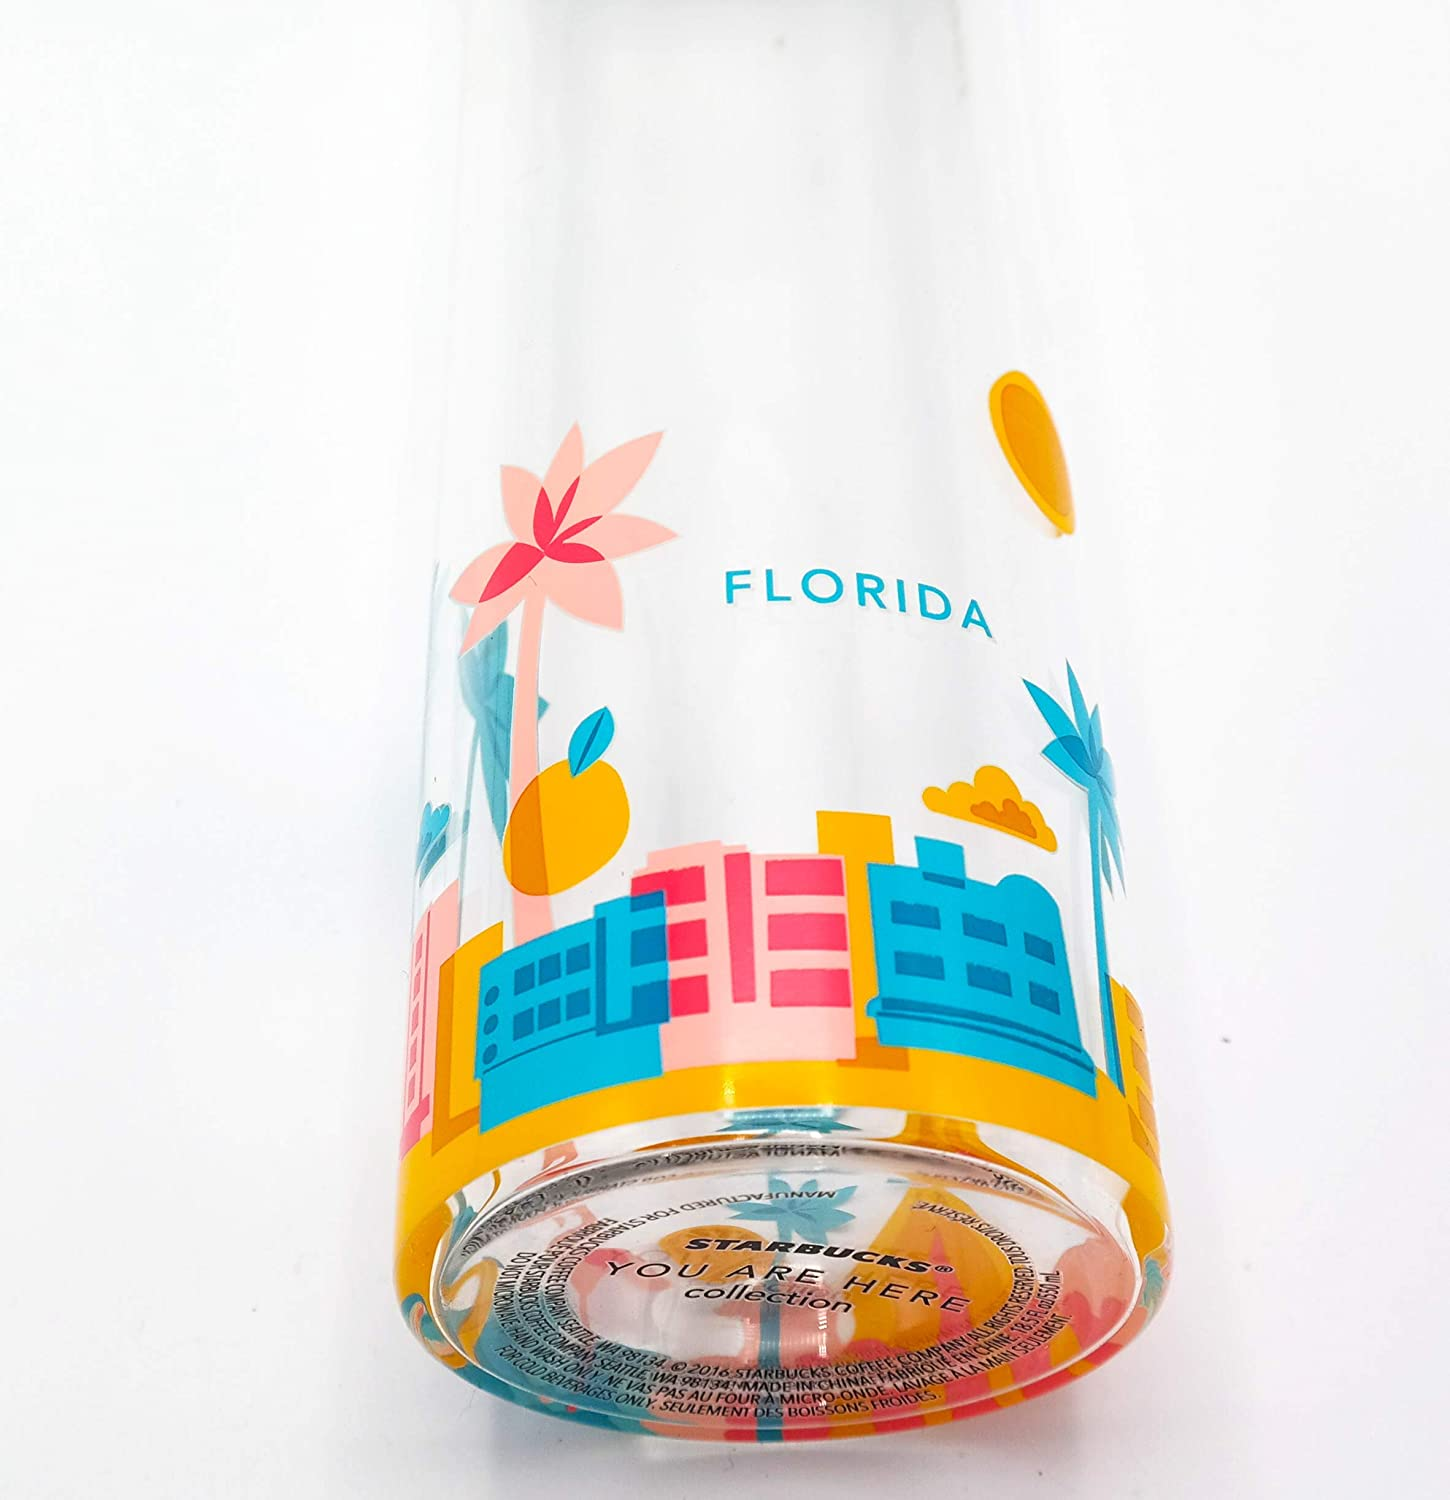 18.5 Fl Oz COMINHKPR105336 Florida Starbucks You Are Here Collection Water Bottle